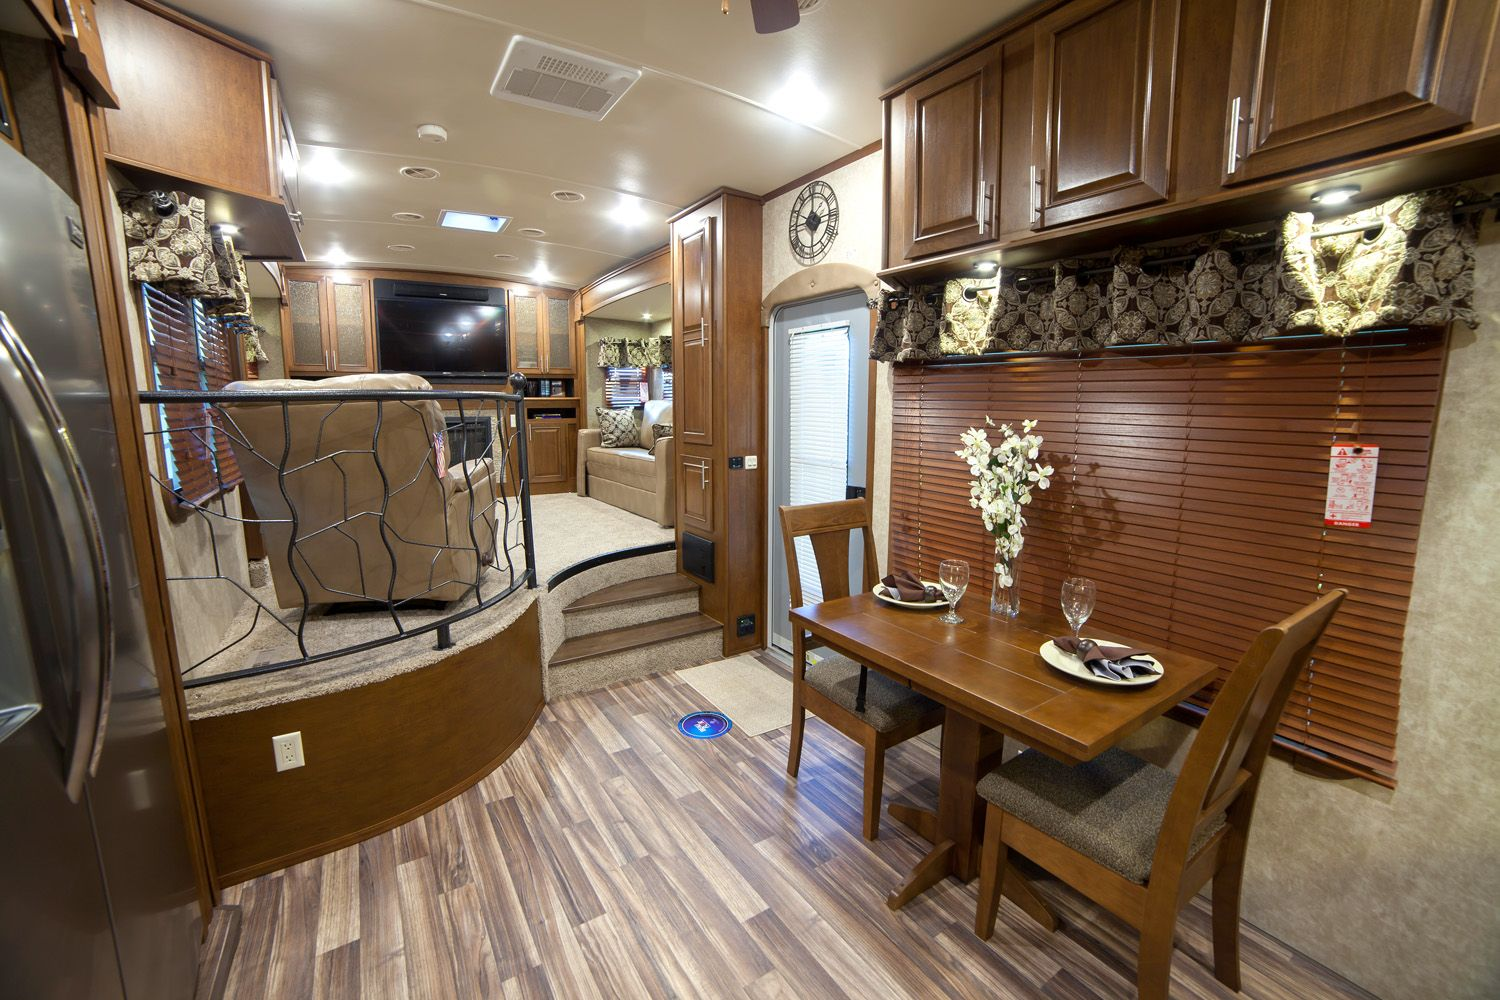 Astonishing used front living room fifth wheel for sale - 2016 luxury front living room 5th wheel ...